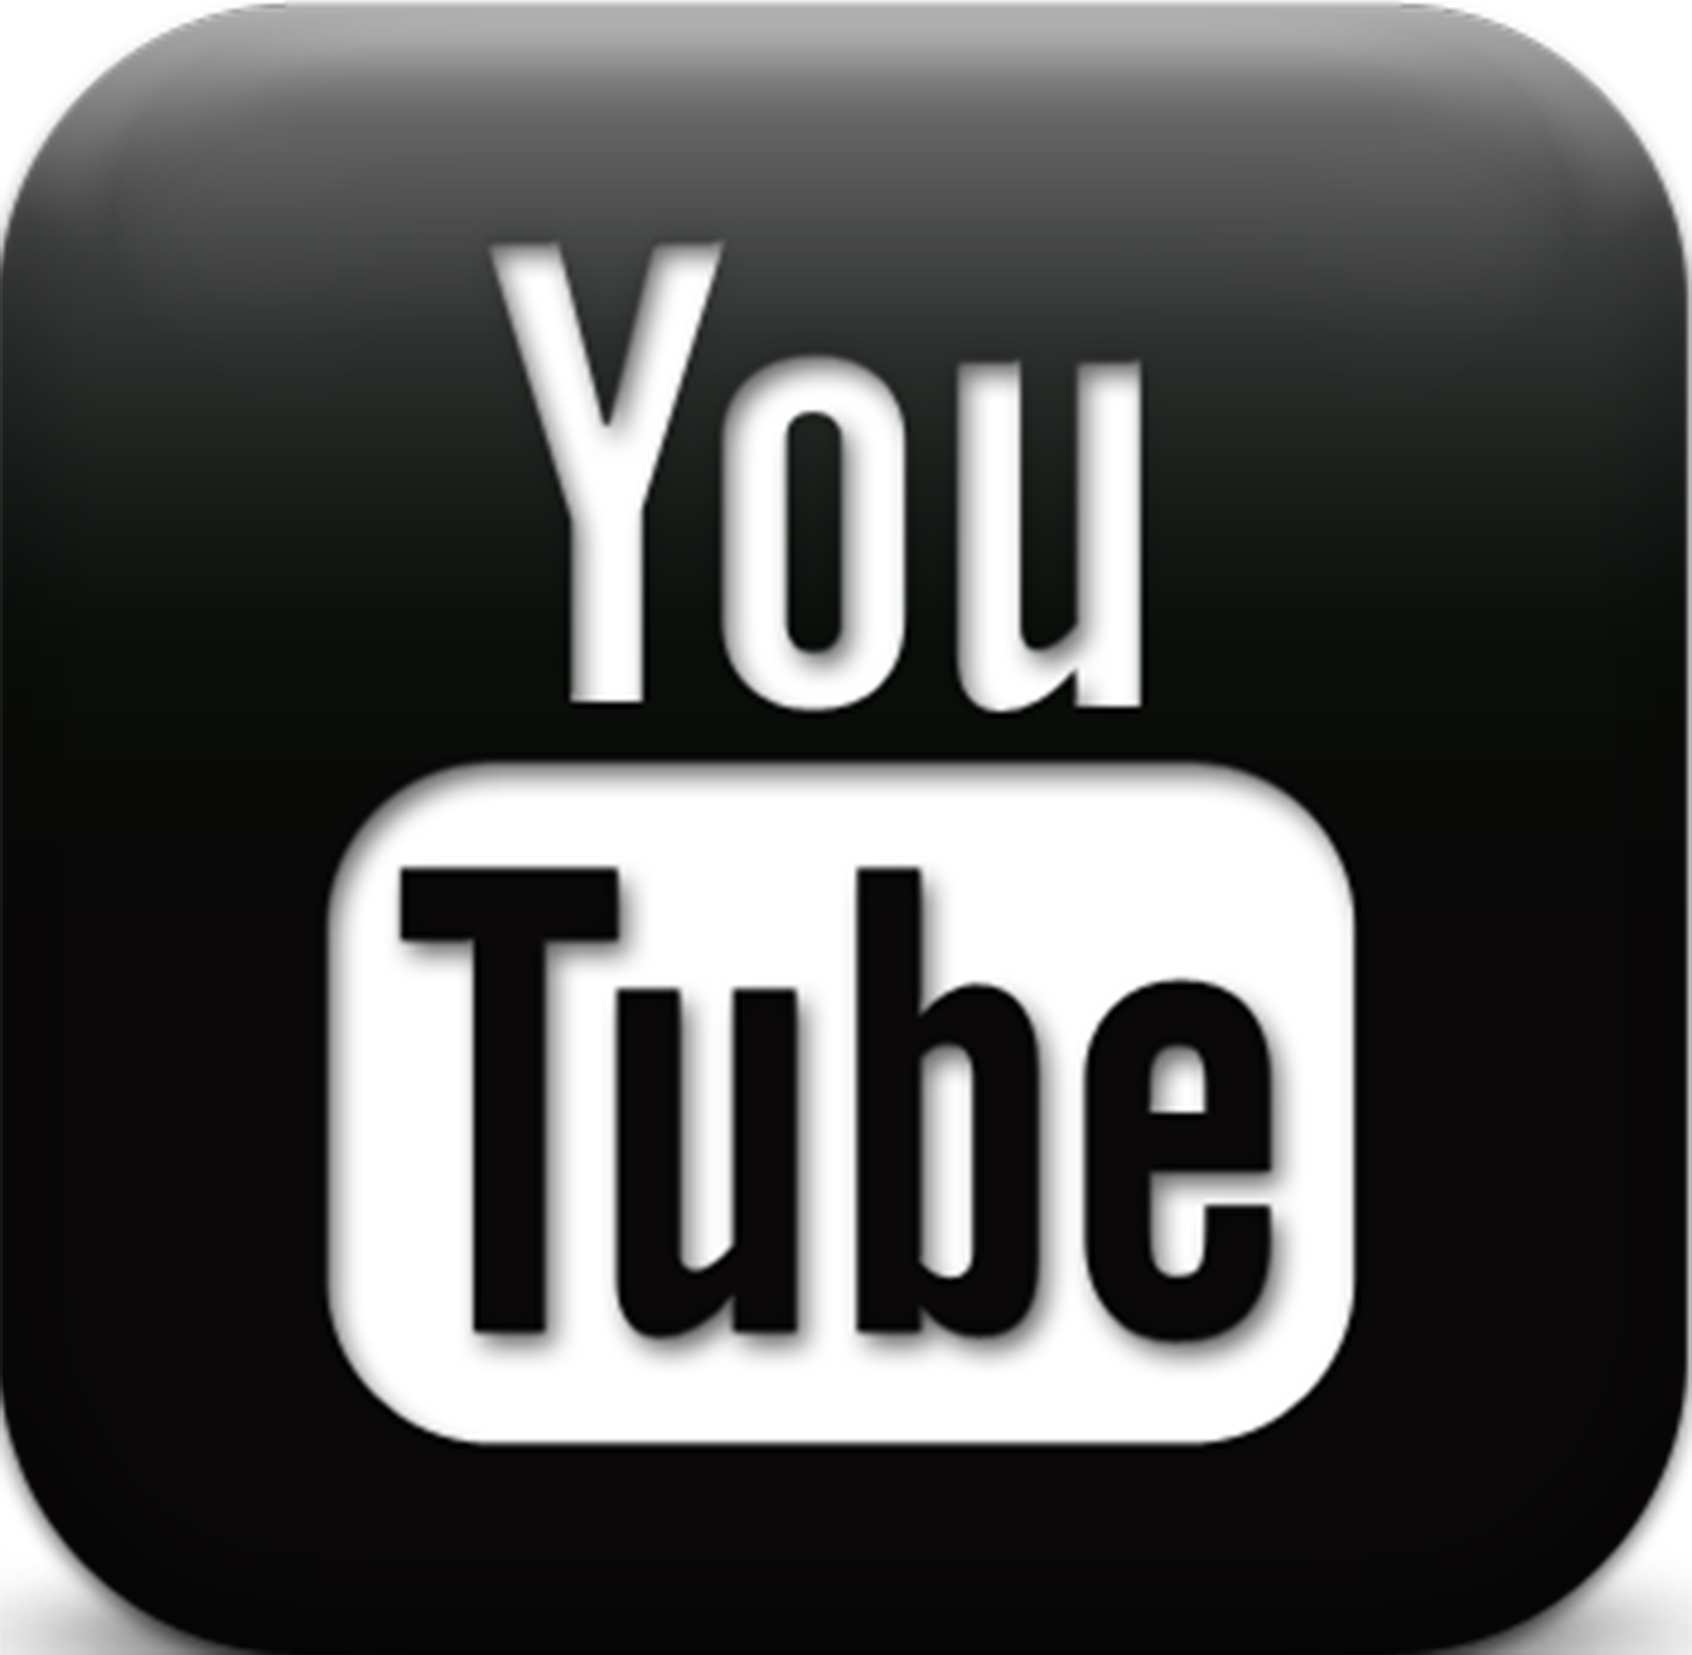 logo YouTube Stichting Beeldenstad Workum